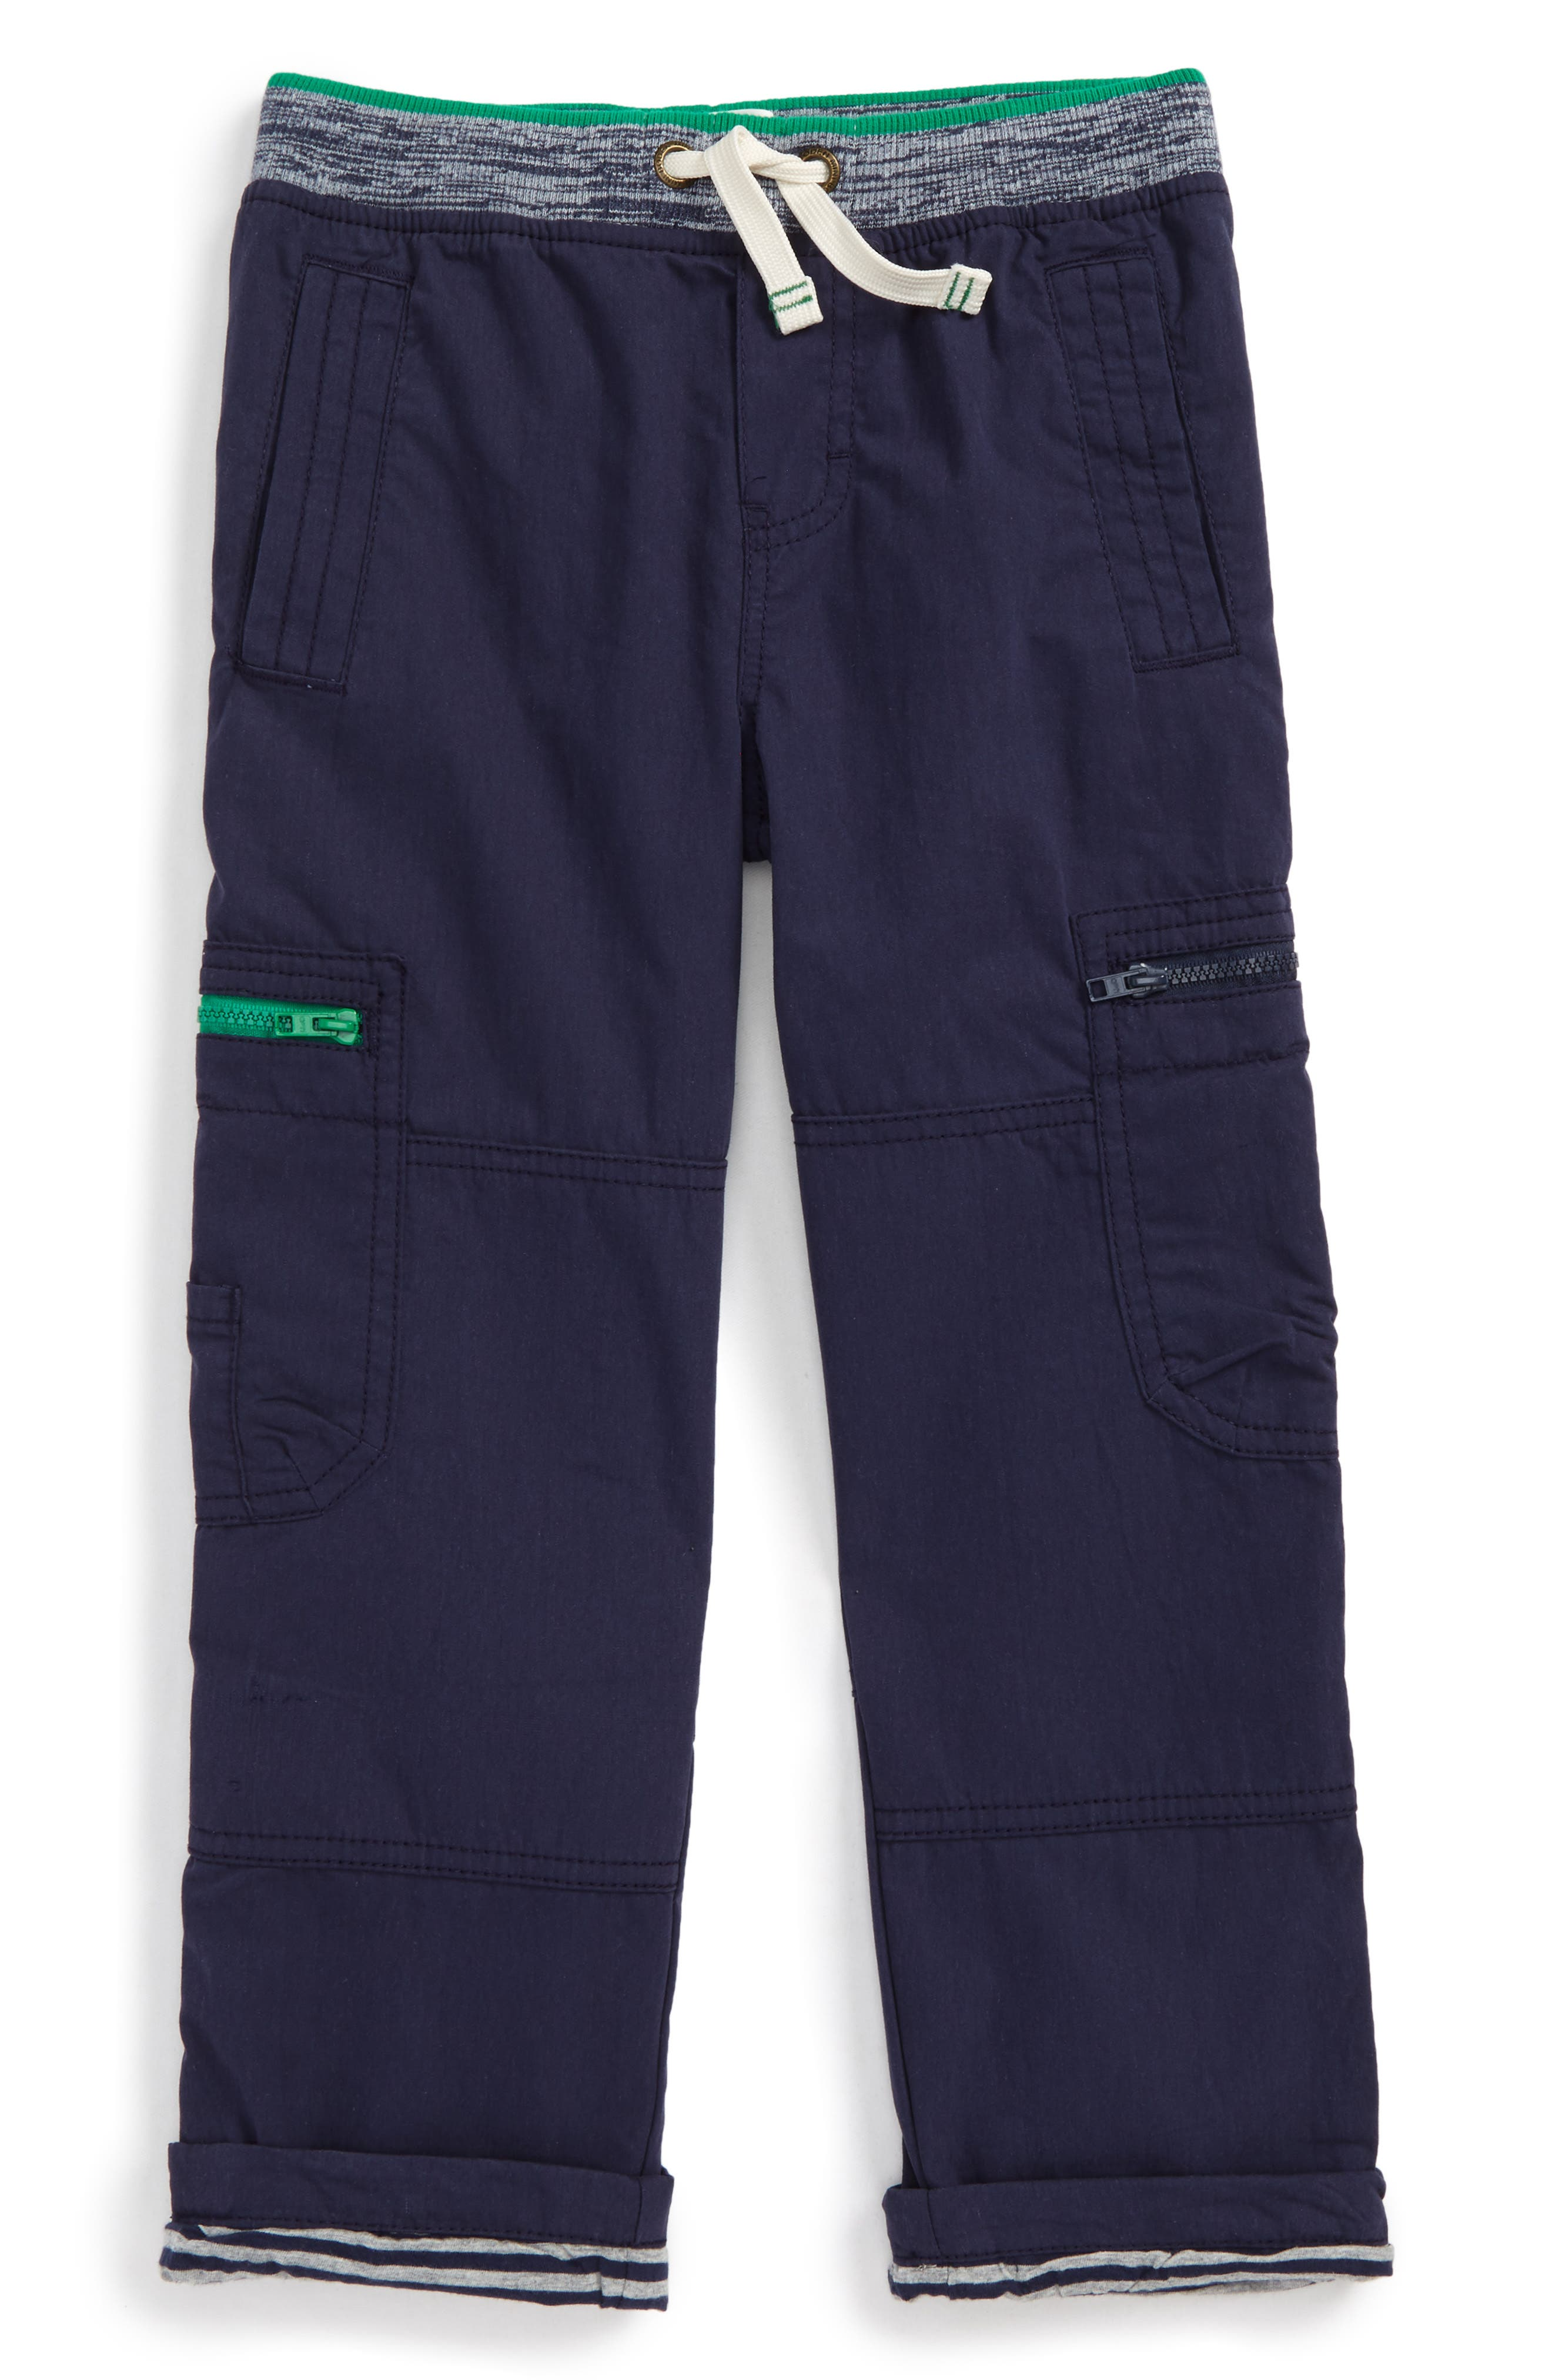 Alternate Image 1 Selected - Mini Boden Lined Cargo Pants (Toddler Boys, Little Boys & Big Boys)